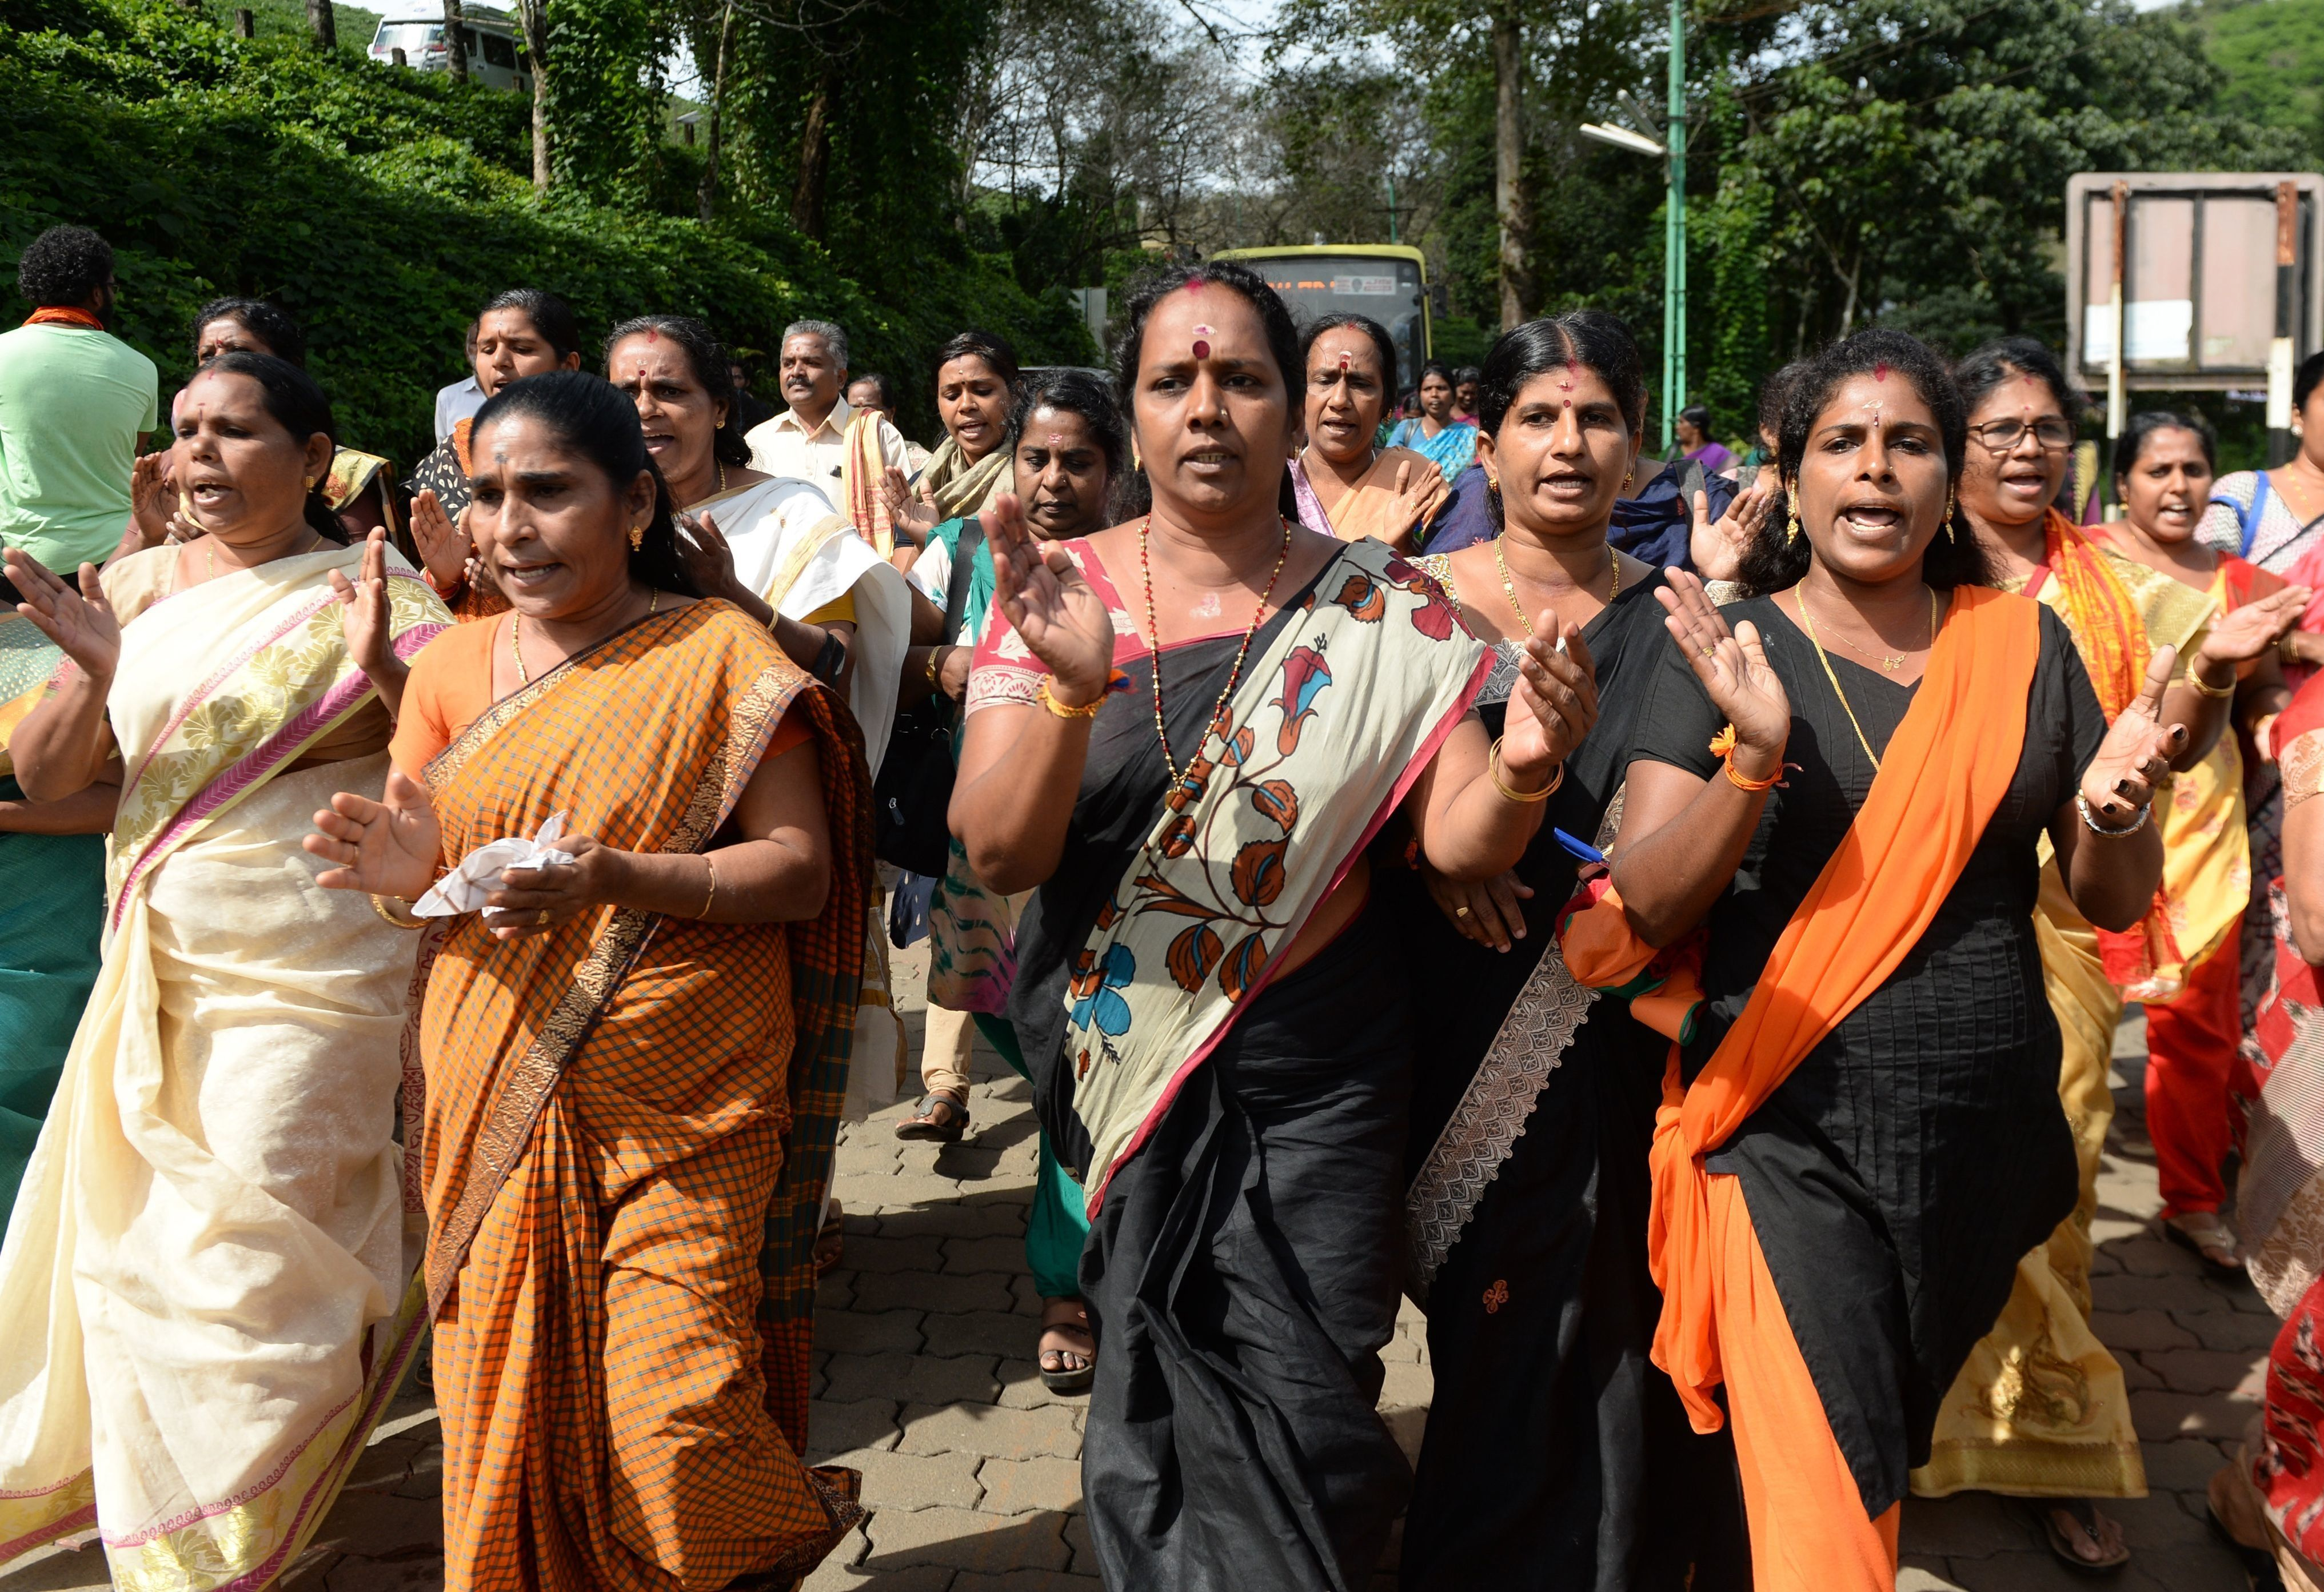 Female devotees also protested against the decision to allow women between ages 10 and 50 to enter